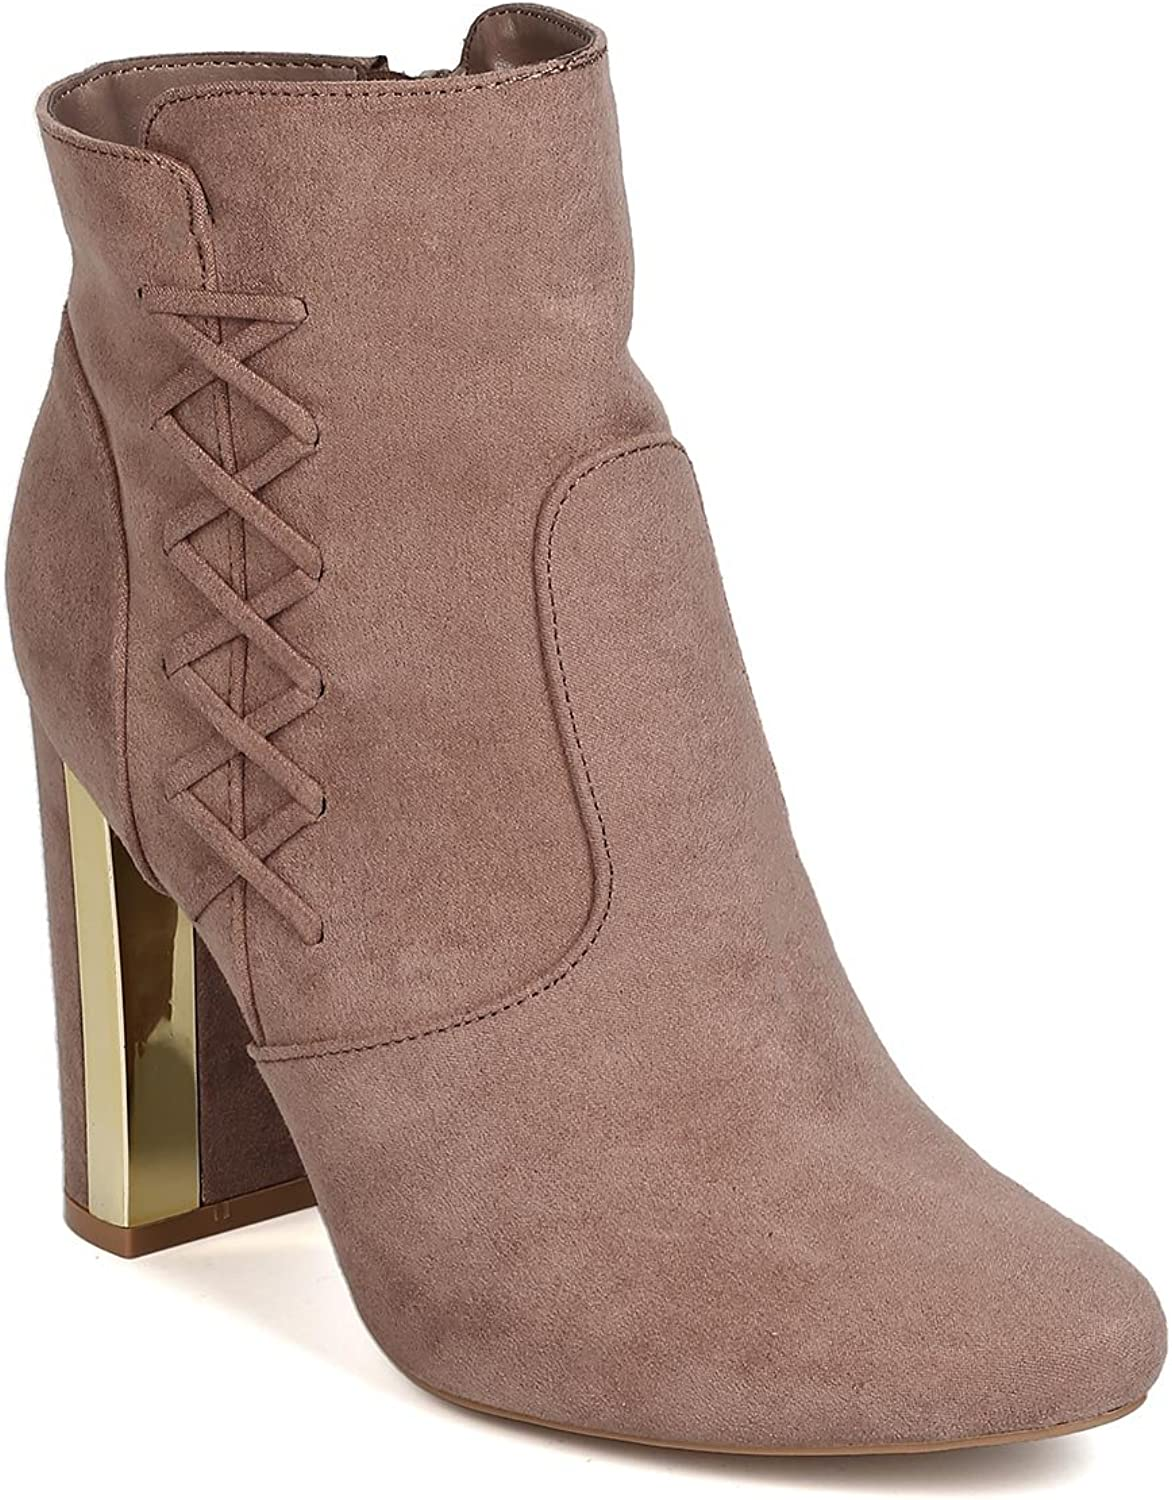 Qupid Women Faux Suede Lace Up Metallic Trim Chunky Heel Bootie GJ18 - Taupe